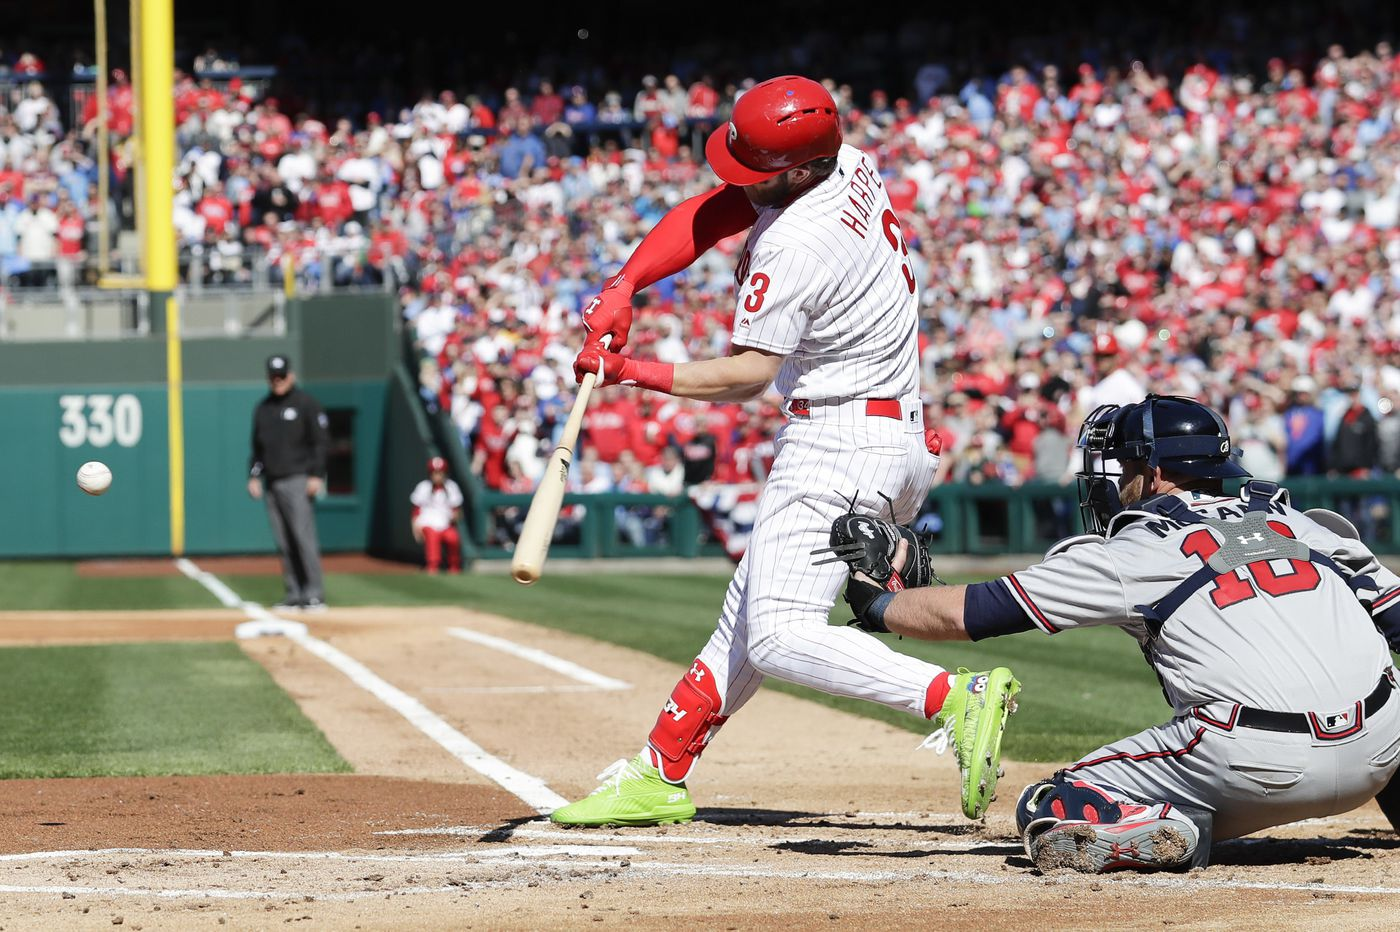 Bryce Harper wears Phillie Phanatic cleats on opening day